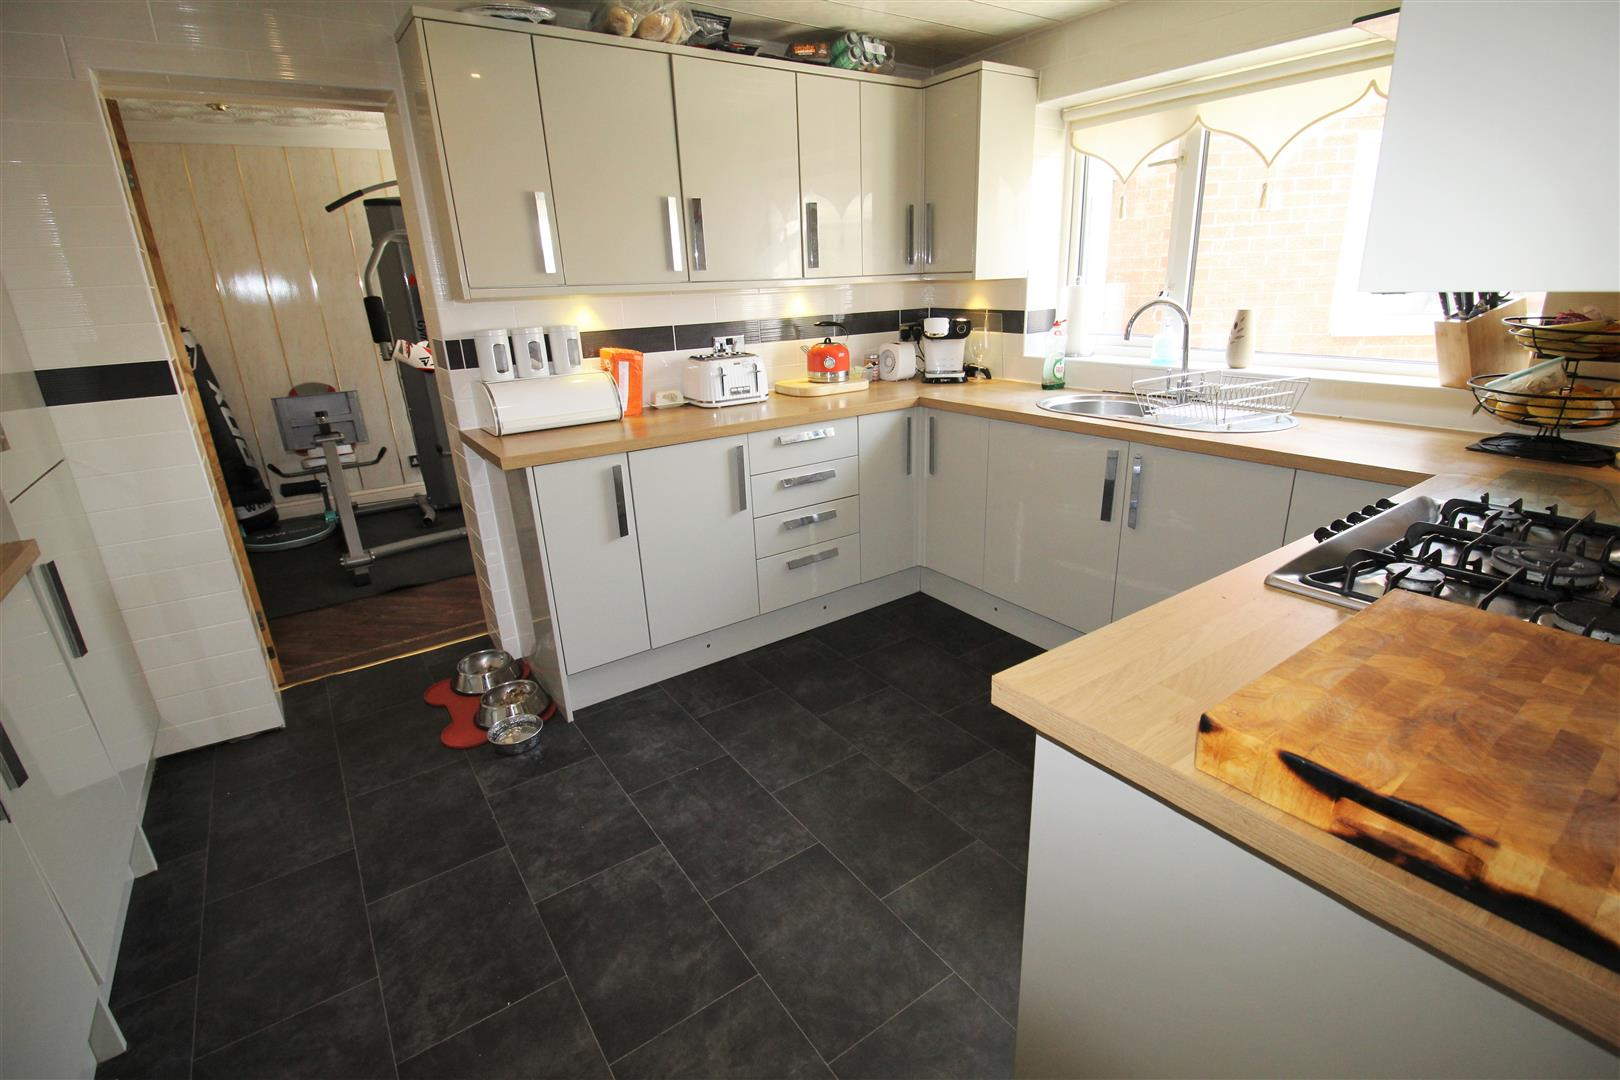 4 Bedrooms, House - Detached, Ormskirk Road, Knowsley, Prescot